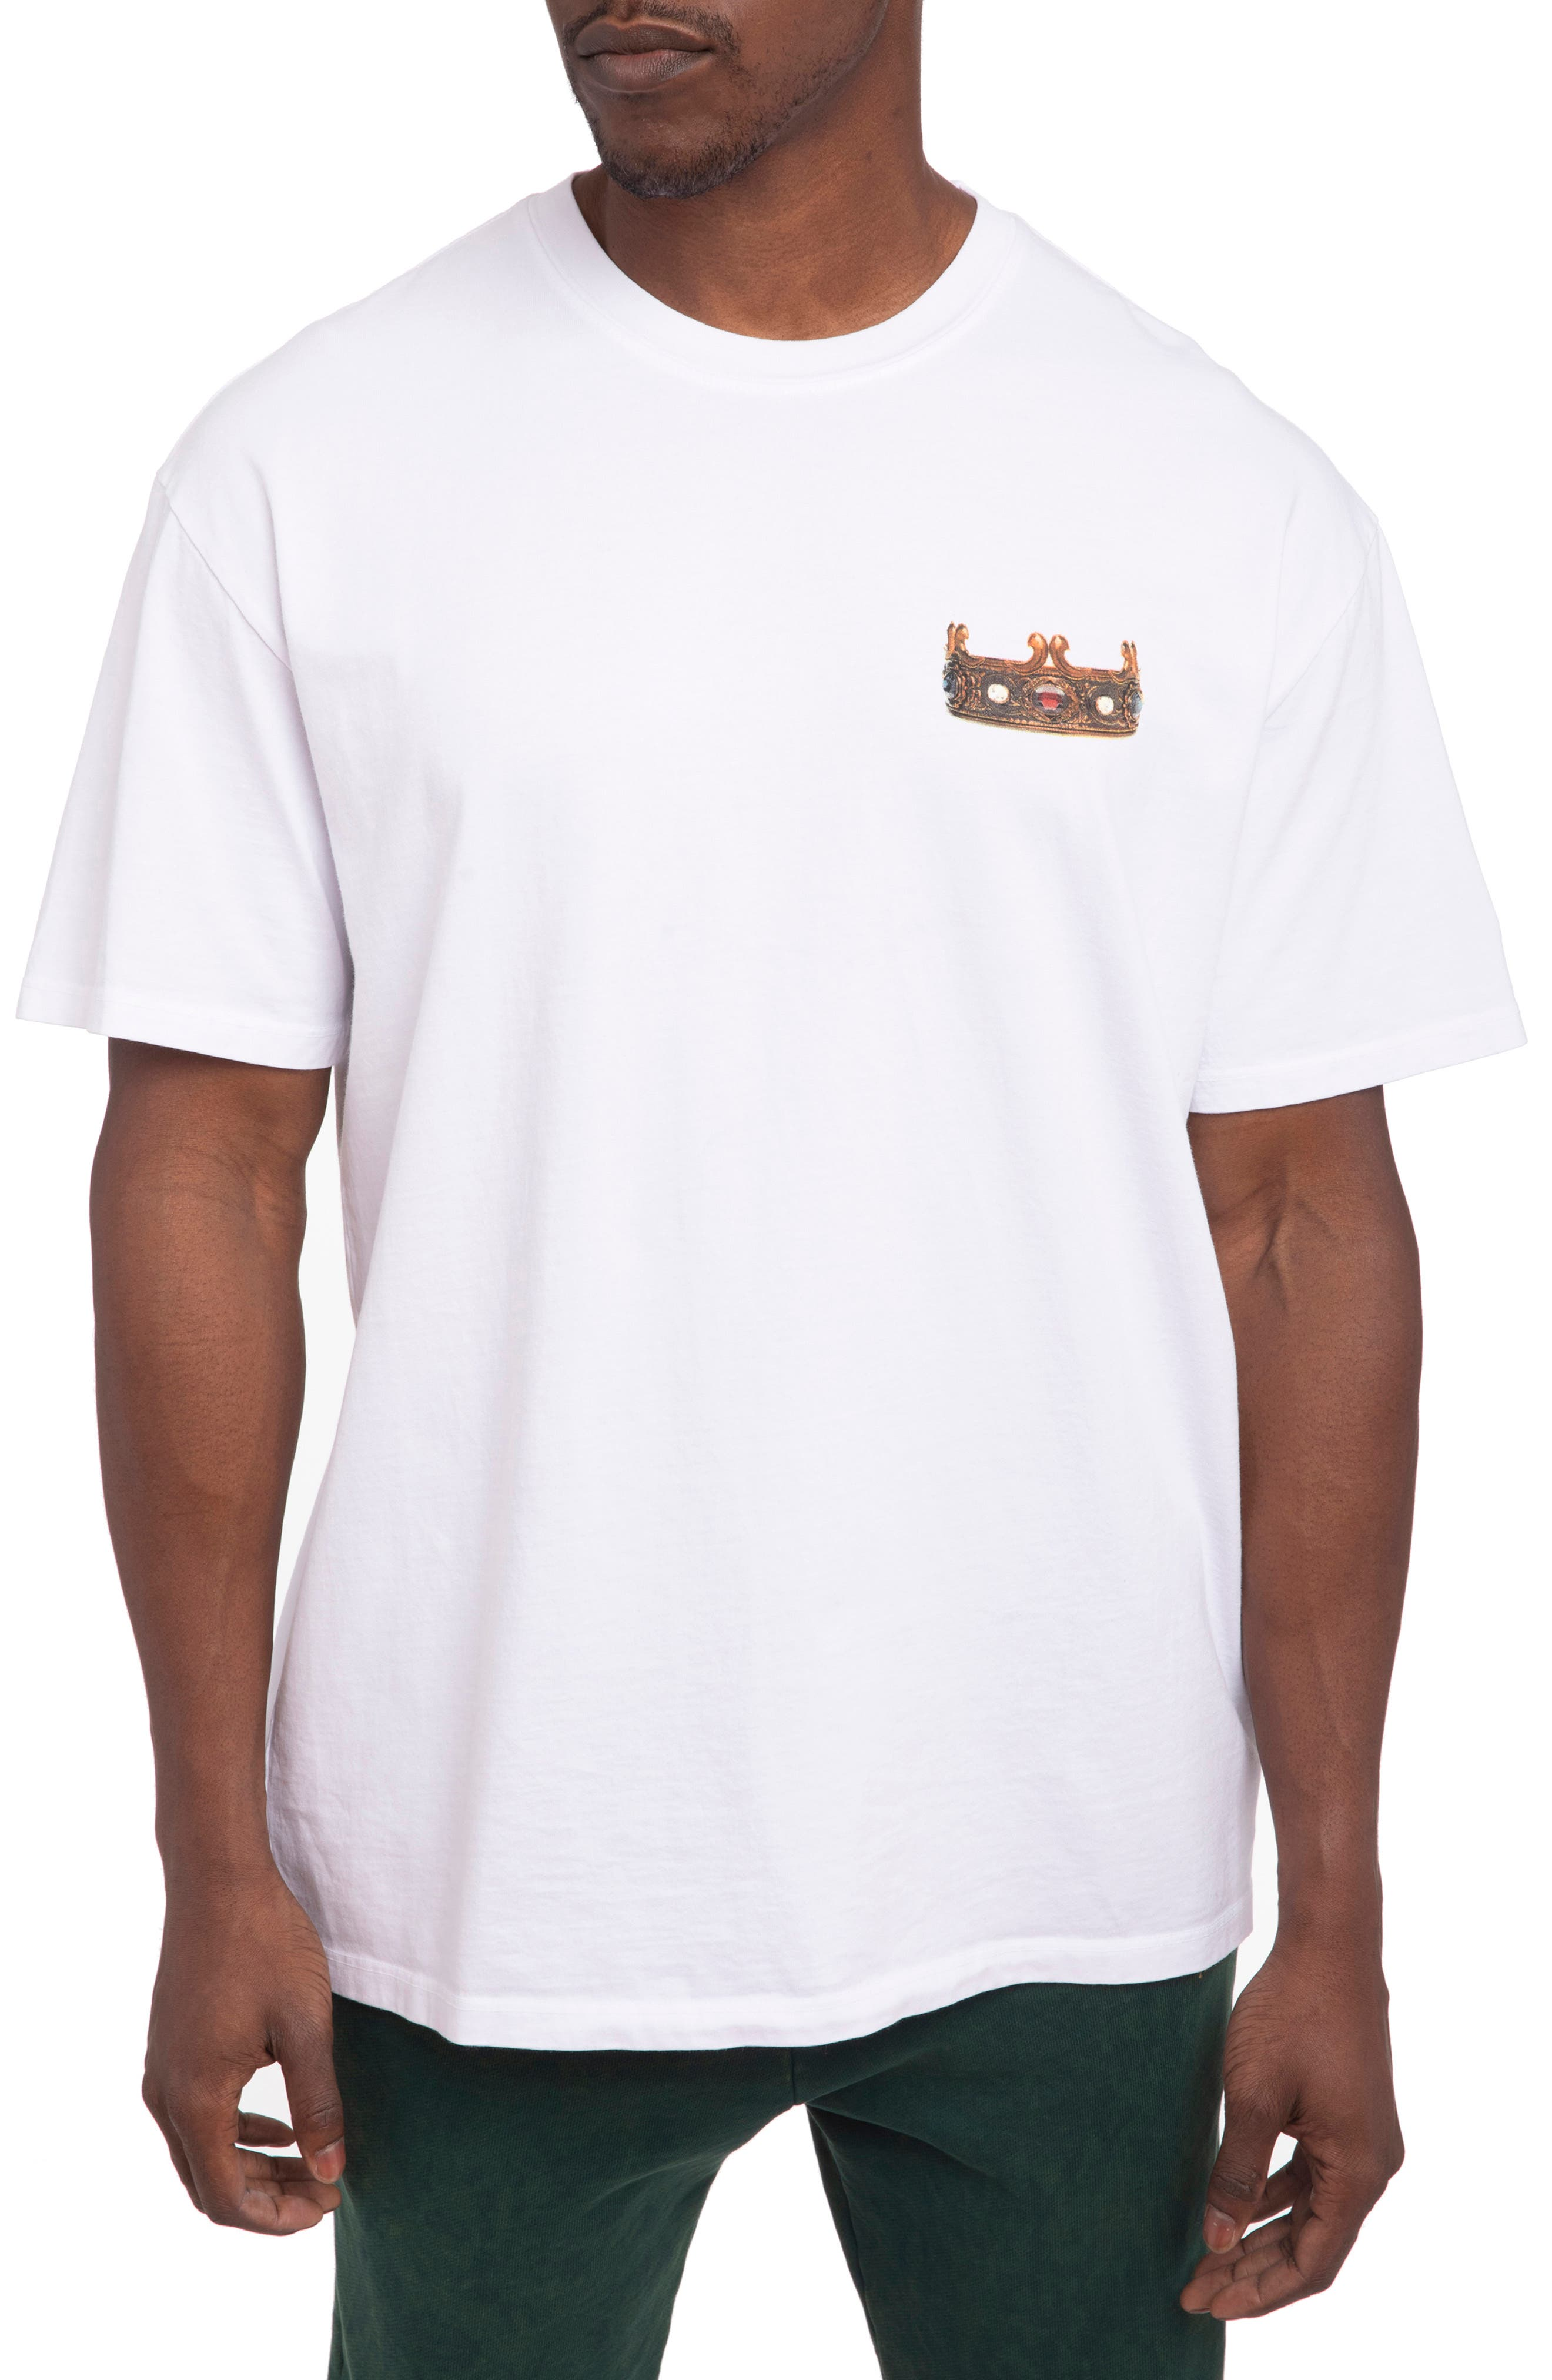 Men's Hstry By Nas X Coming 2 America Queens Oversize Graphic Tee